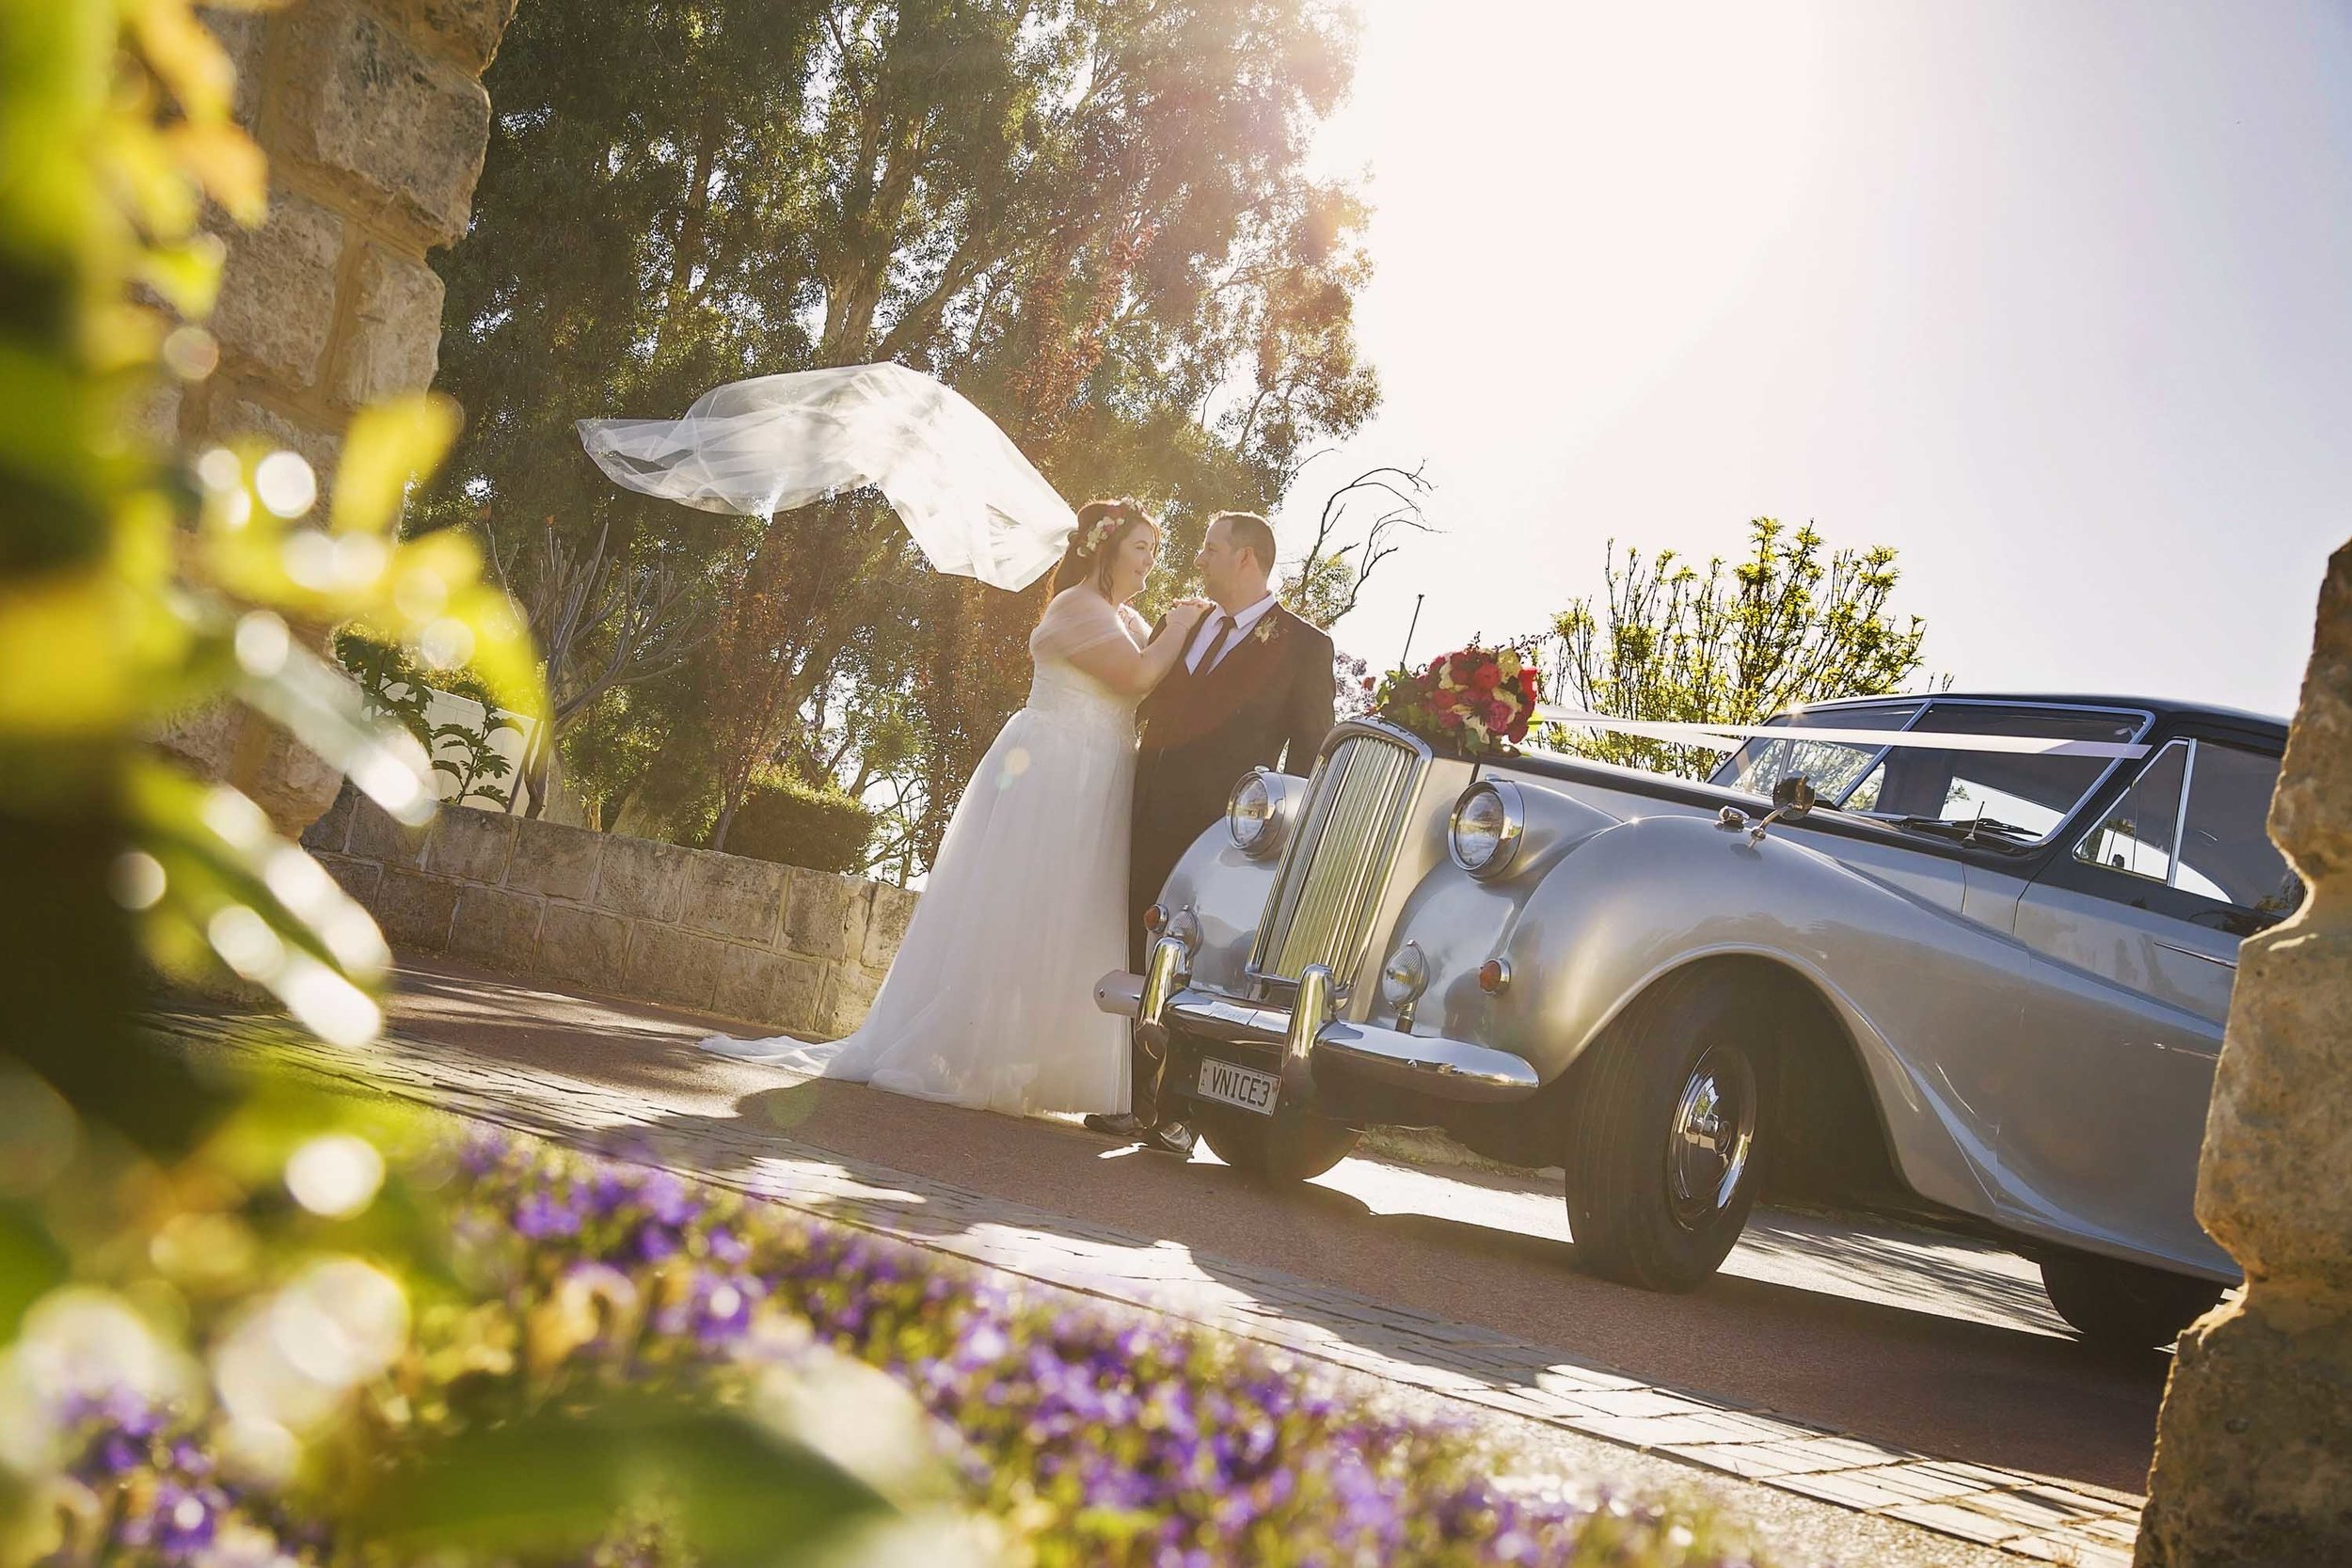 12-Perth_Wedding_Cars_Very_Nice_Classics_All_About_Image_Photography_Amy_and_Dan_Hodgetts _27_November_2016.jpg